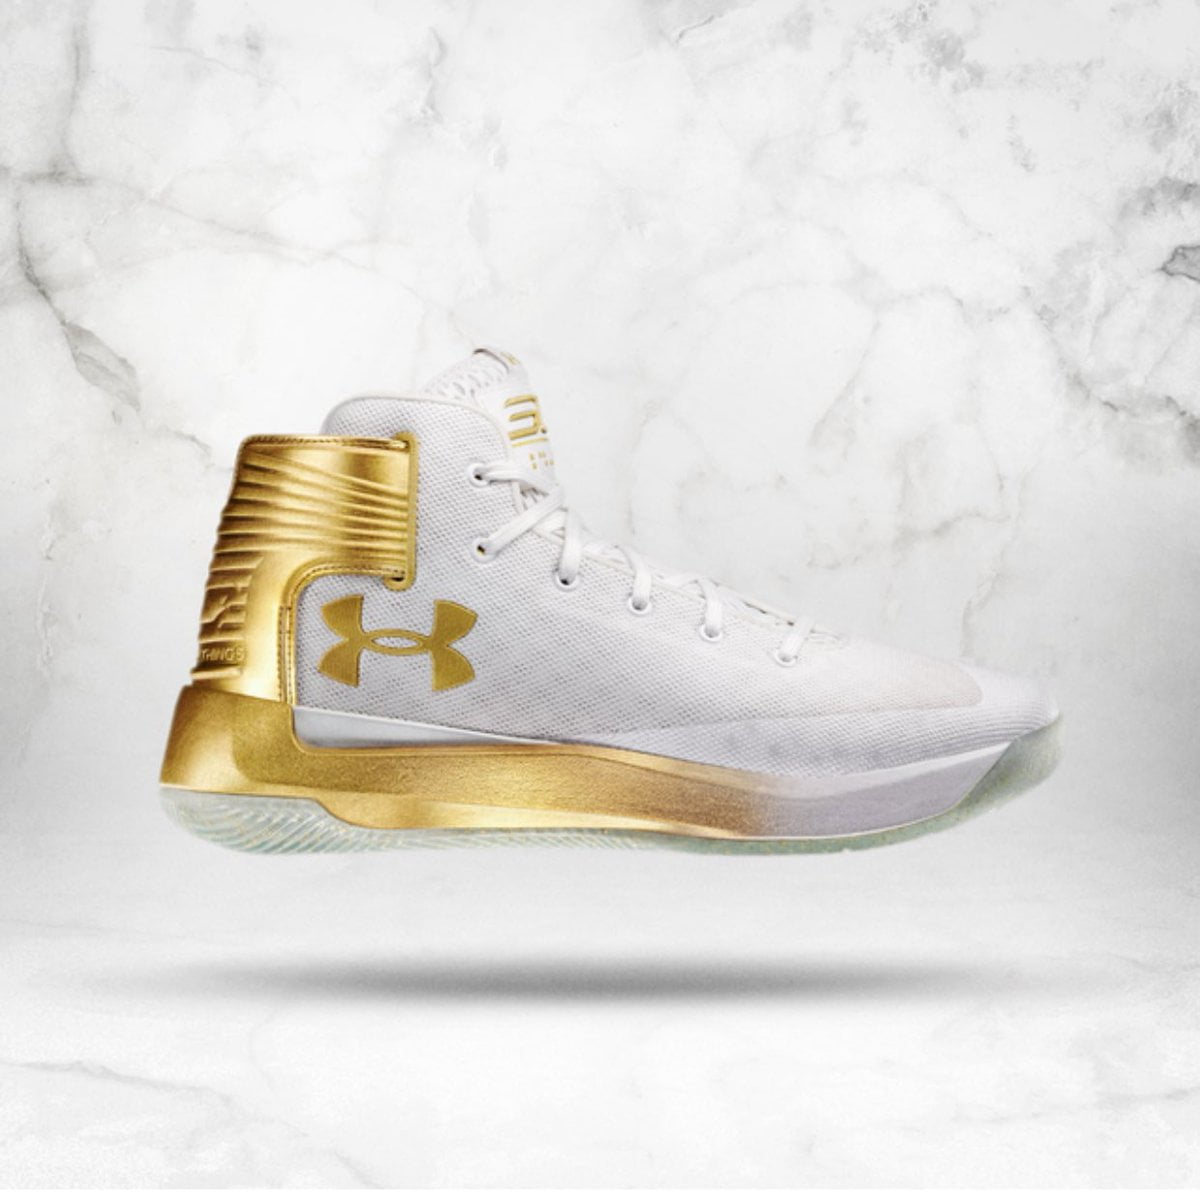 Stephen Curry Under Armour playoff shoe